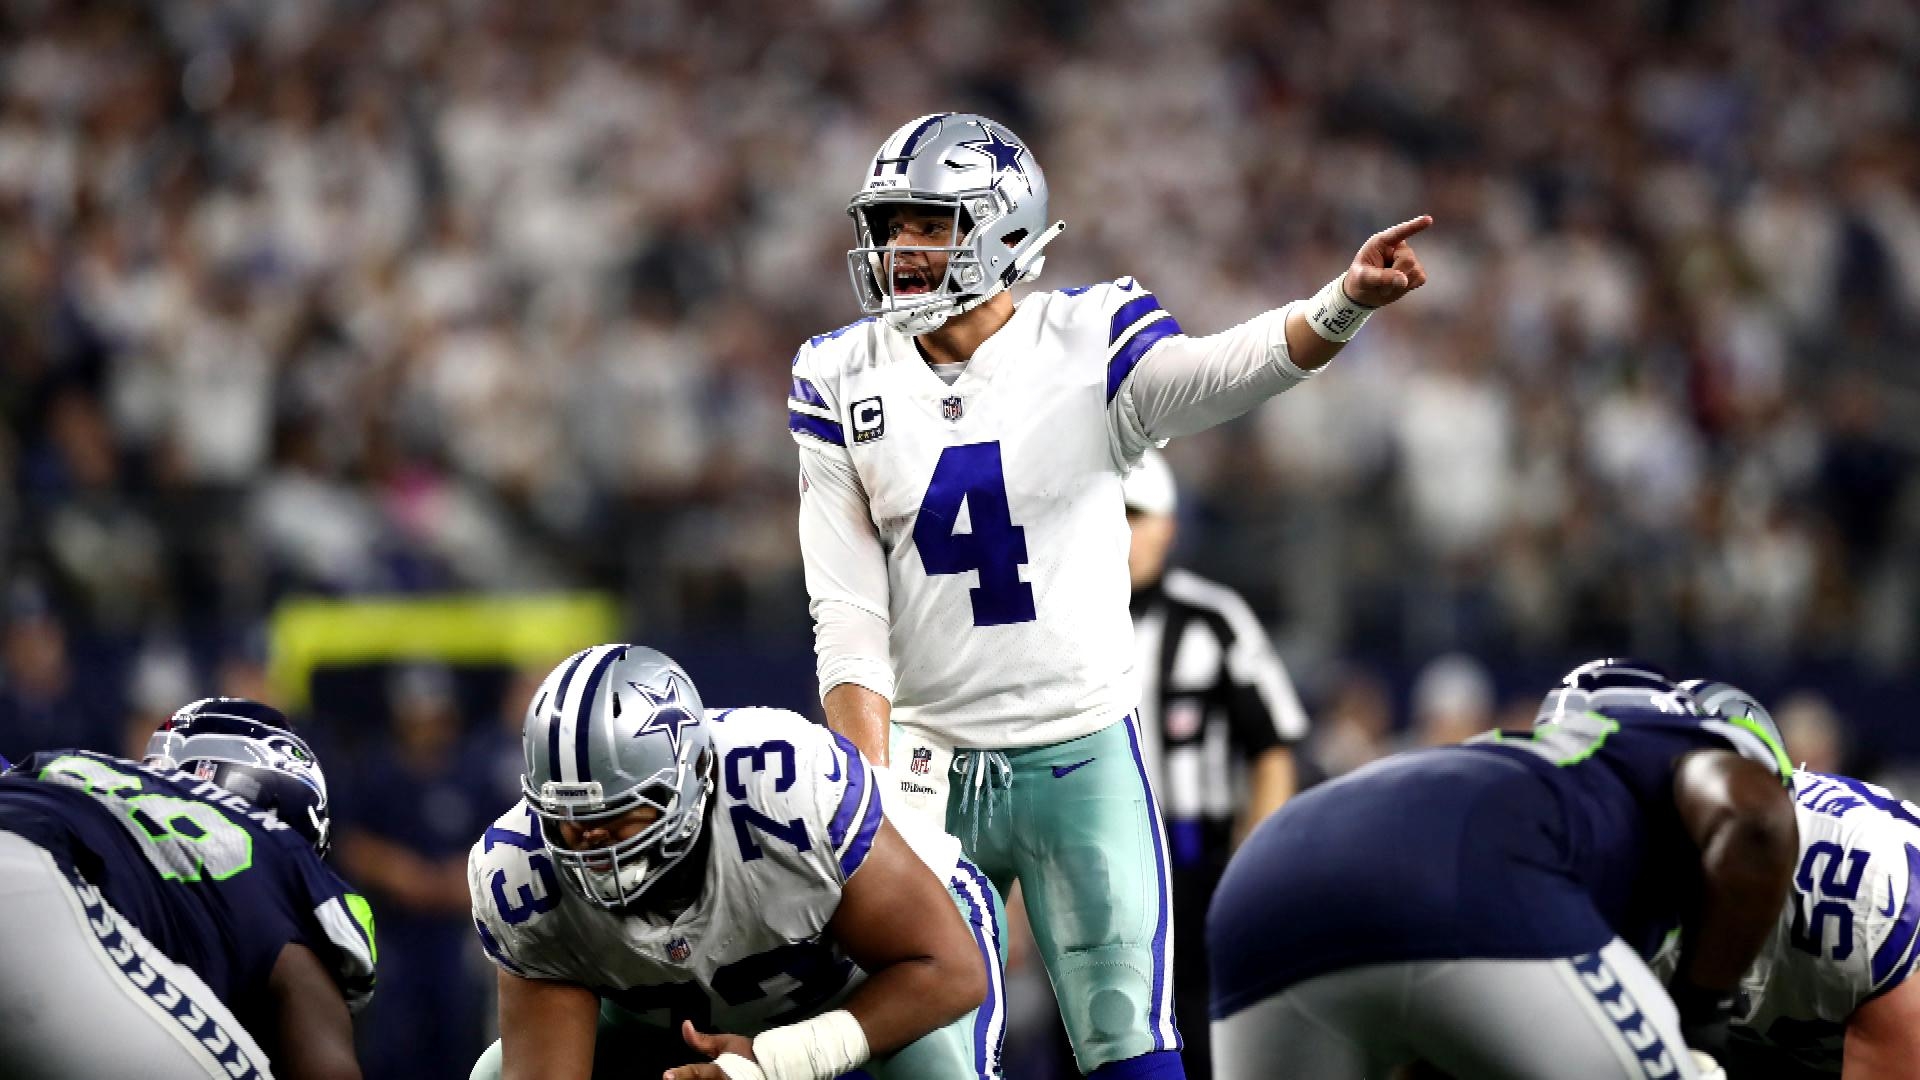 Dak Prescott's extension may be hardest deal in Cowboys' history